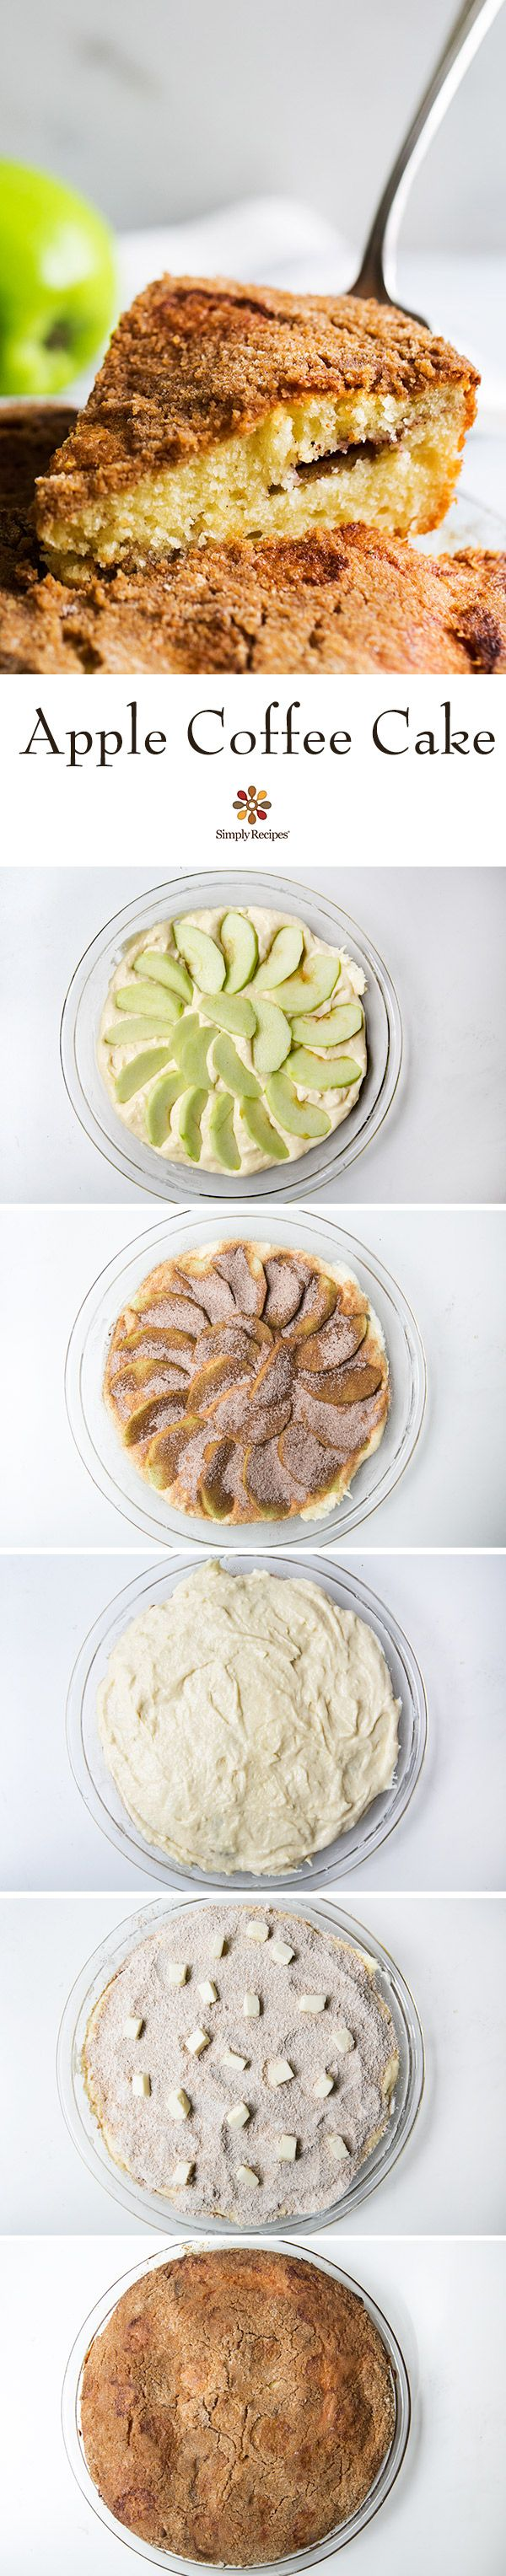 Apple Coffee Cake that's quick, easy, and delicious! Perfect for a Sunday brunch or with your morning coffee. On SimplyRecipes.com